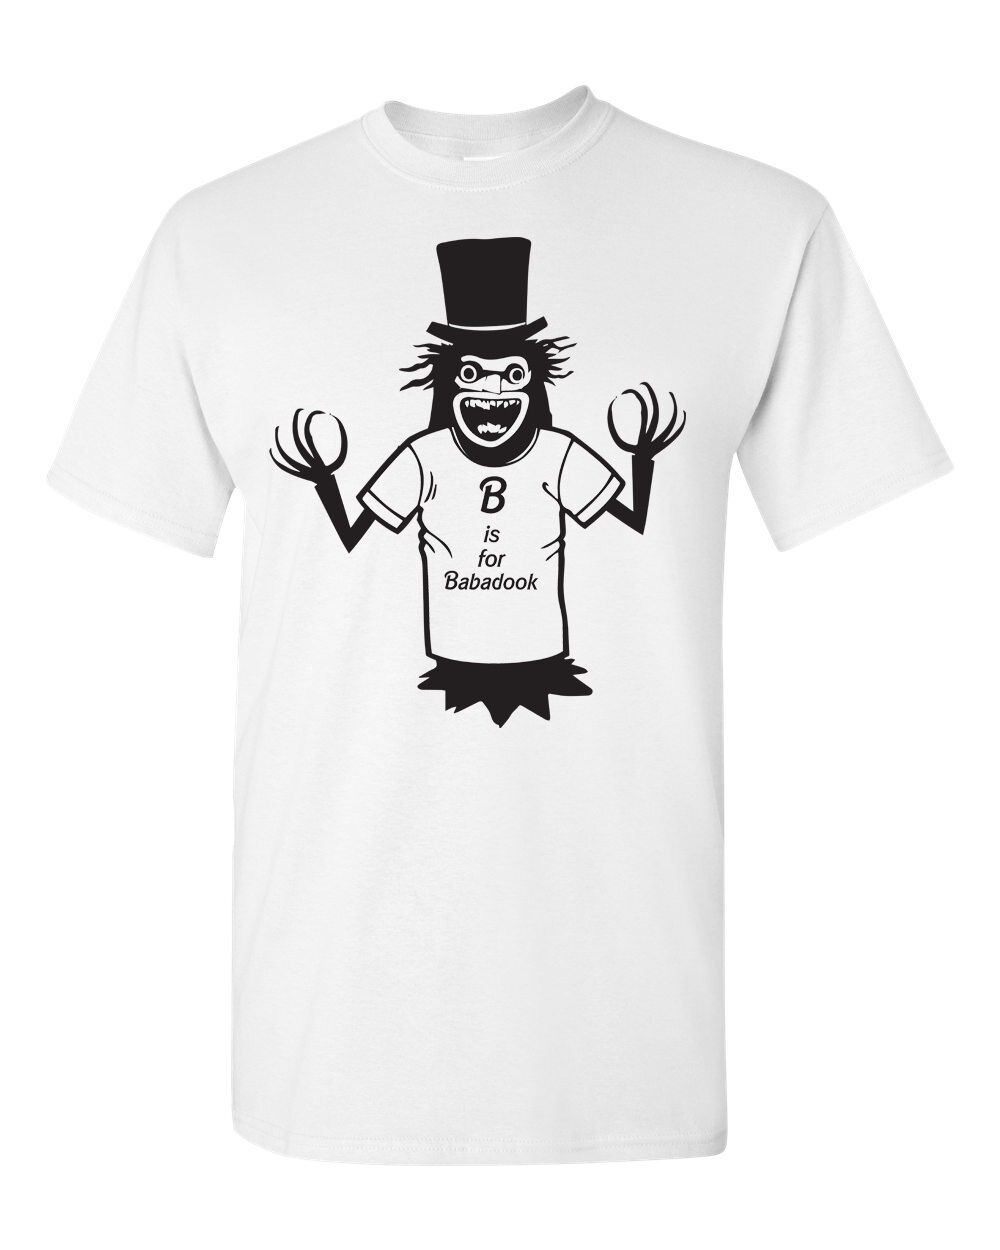 The Babadook Dook GAY LGBT Horror Movie Scary Halloween Men's Tee Shirt 1647 image